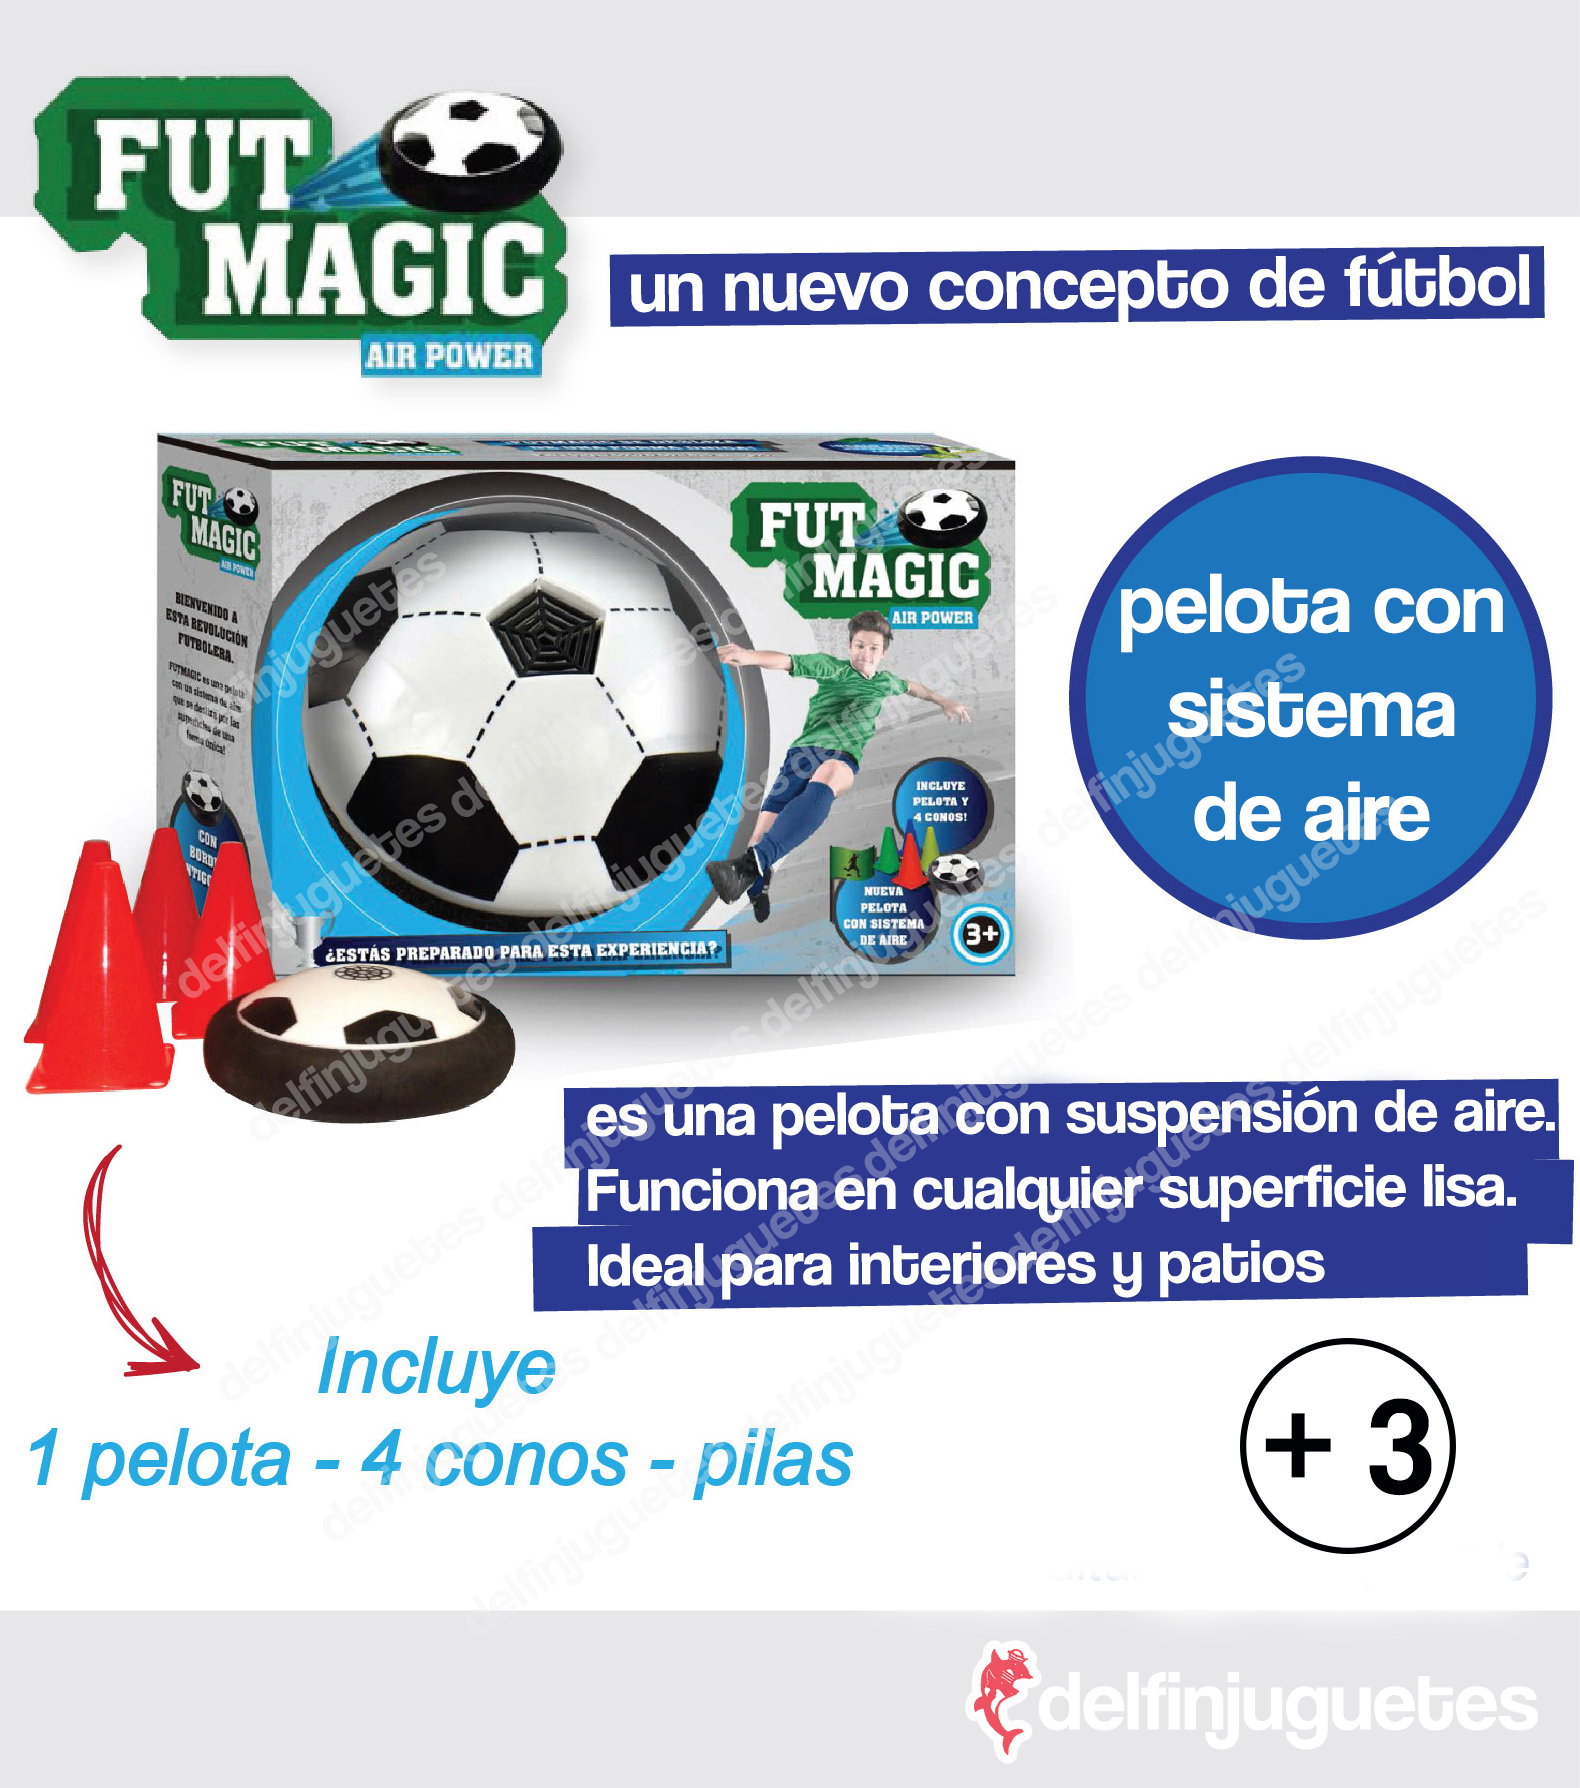 Fut Magic en DELFIN Juguetes